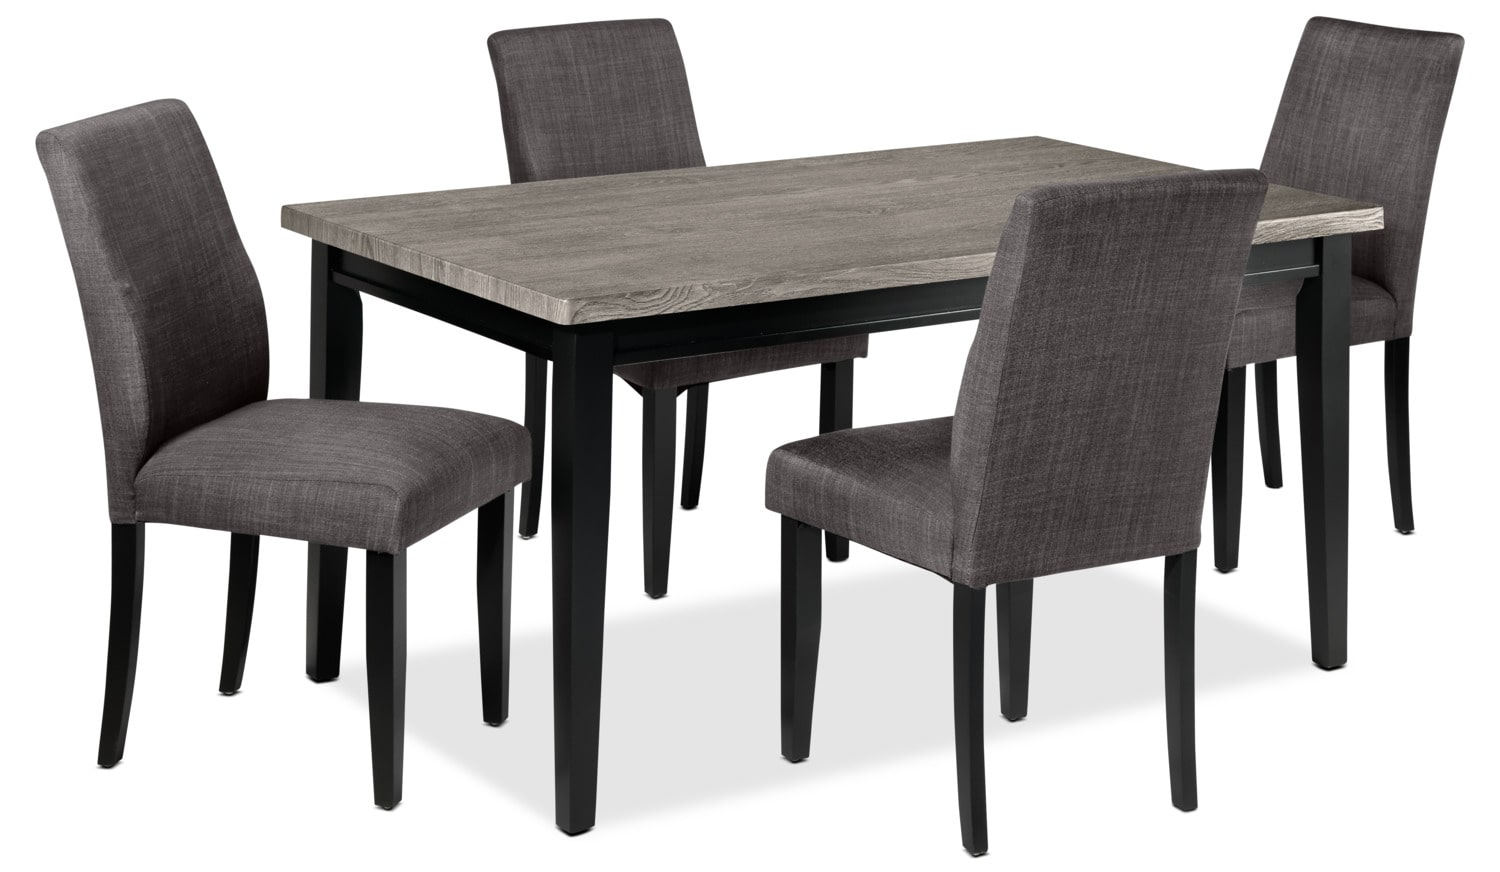 Alfred 5-Piece Dinette Set - Grey and Charcoal